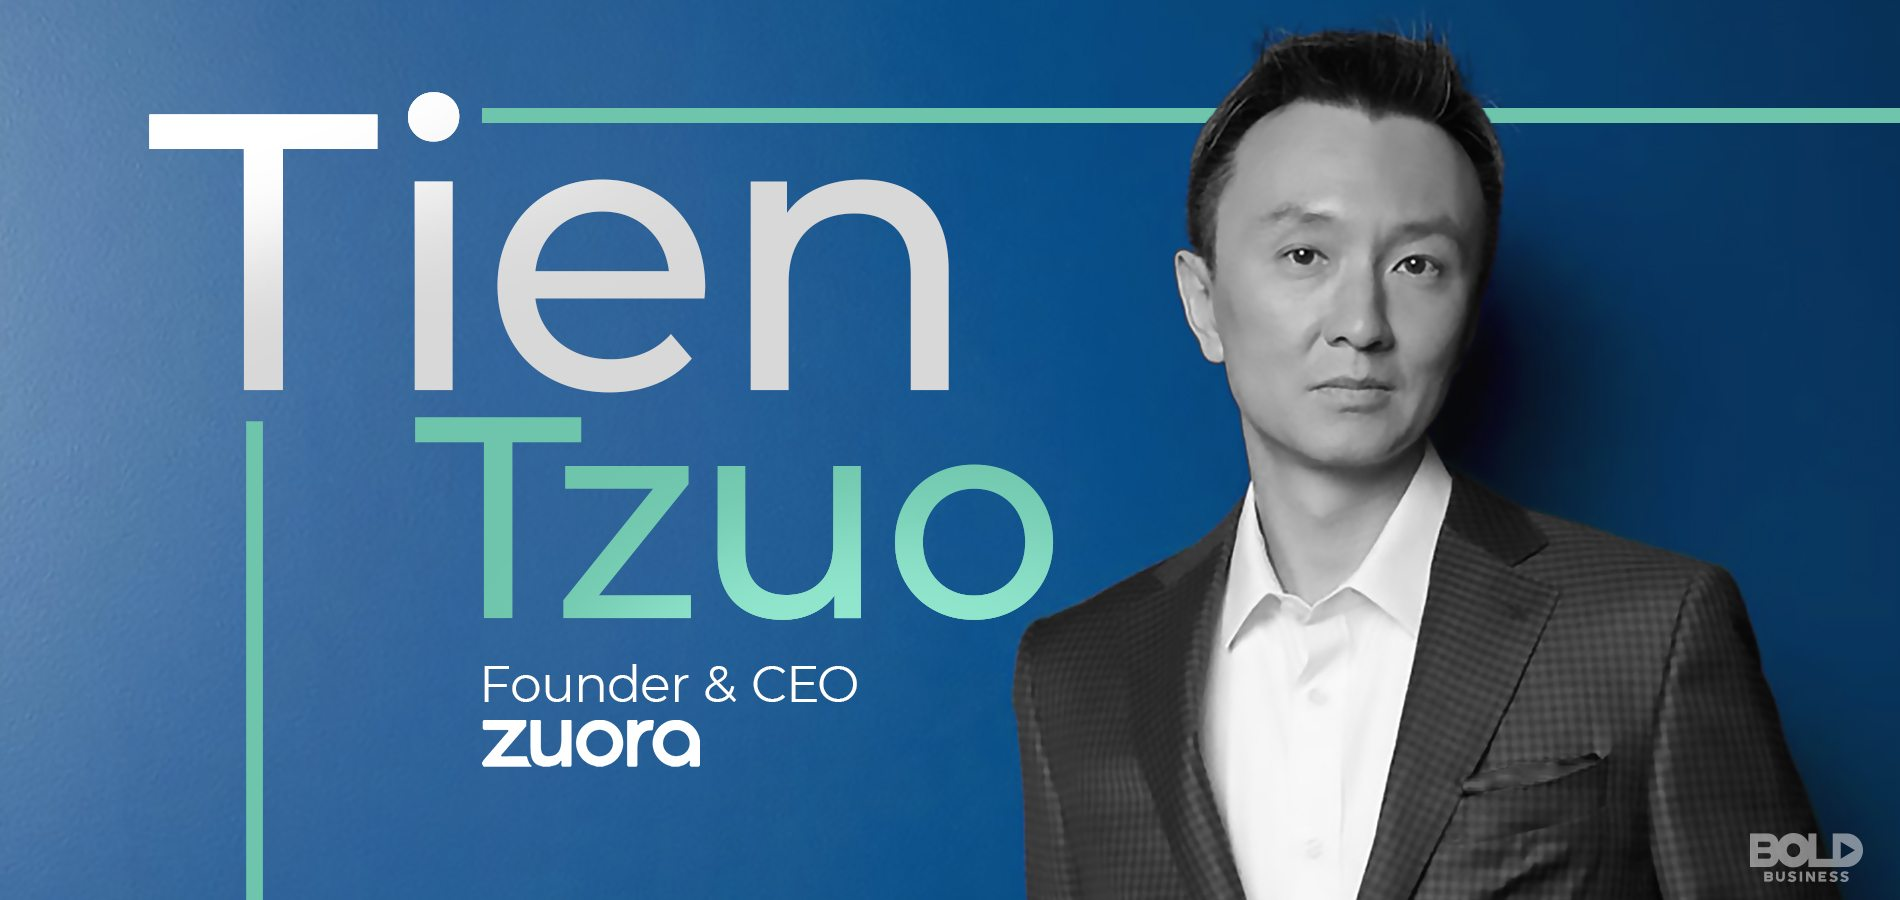 Bold leader Tien Tzuo has made Zuora a key player in the subscription billing space.